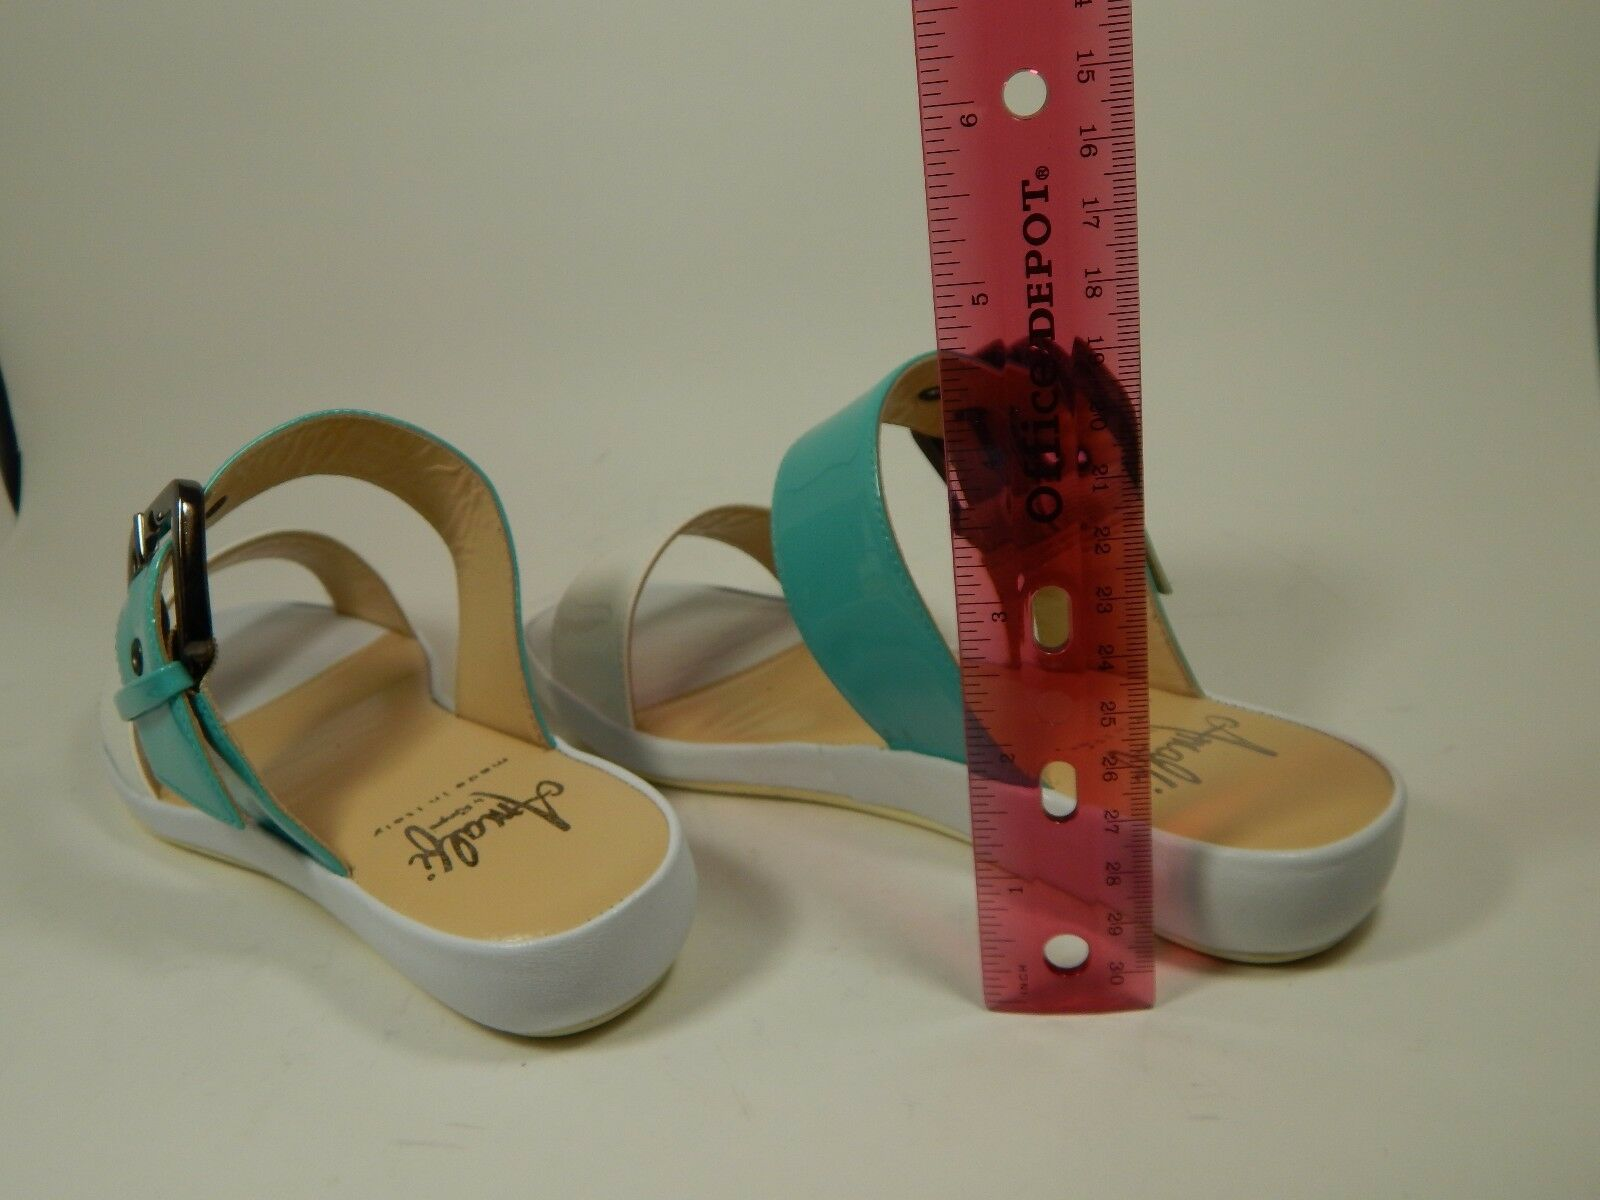 215 New Amalfi Amalfi Amalfi bluee Aqua White Patent Leather Slip On Sandals Slides 6 M 0ce720